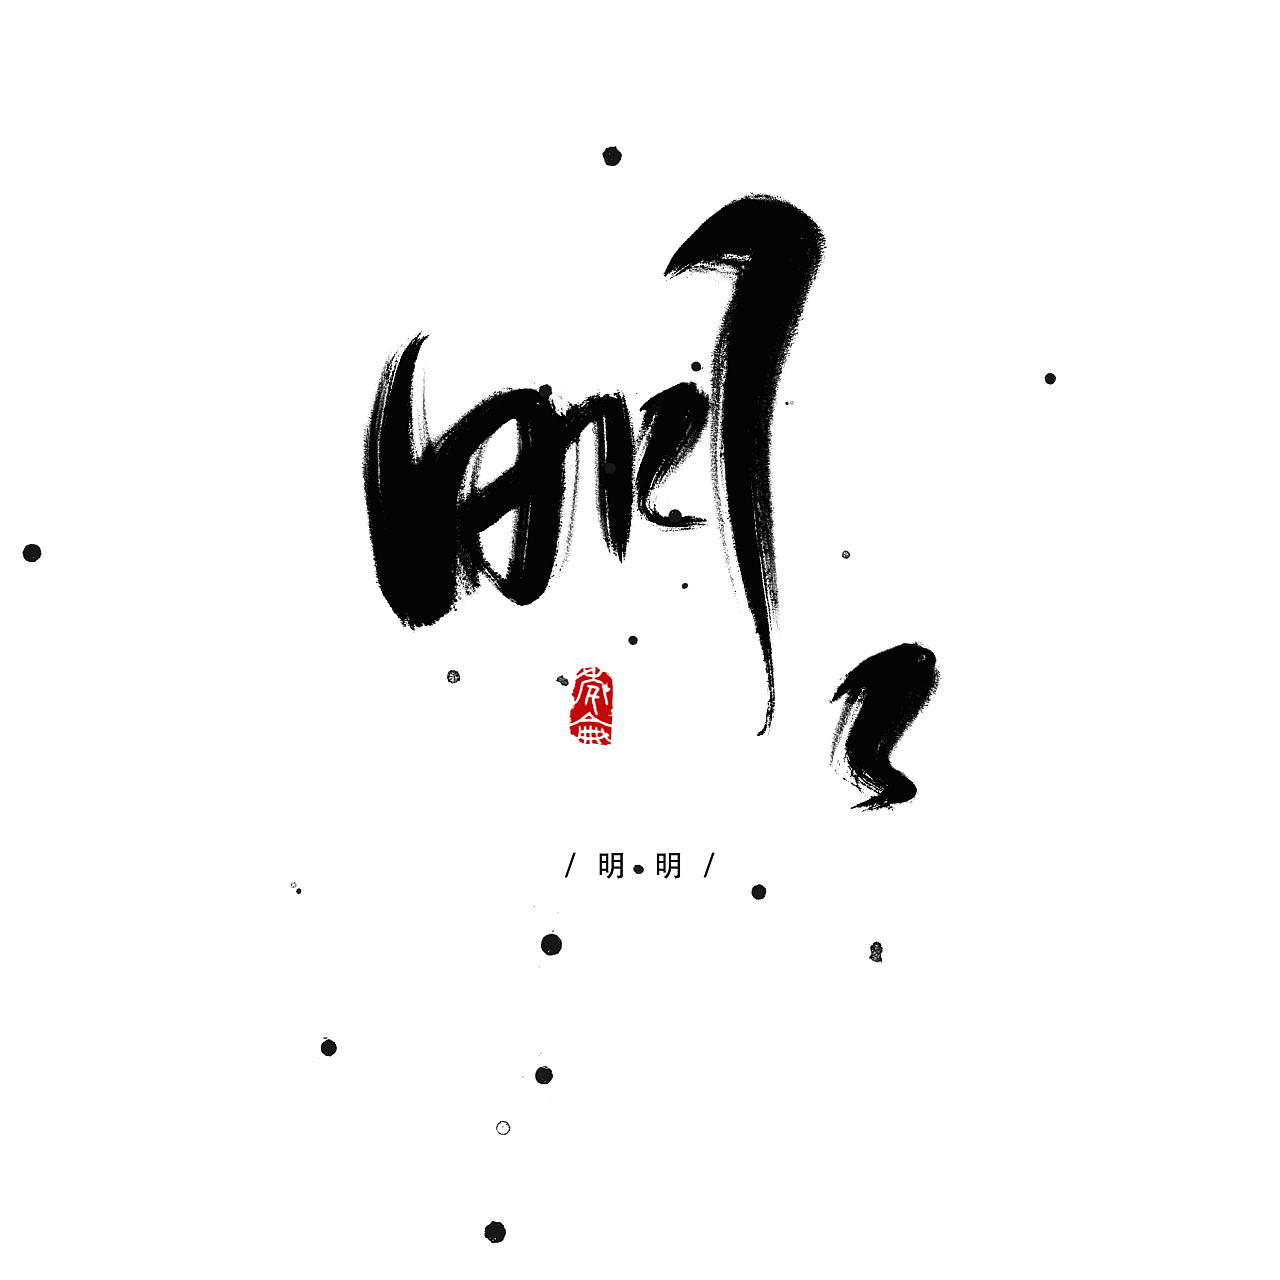 chinesefontdesign.com 2017 09 12 05 58 41 782072 16P Chinese traditional calligraphy brush calligraphy style appreciation #.21